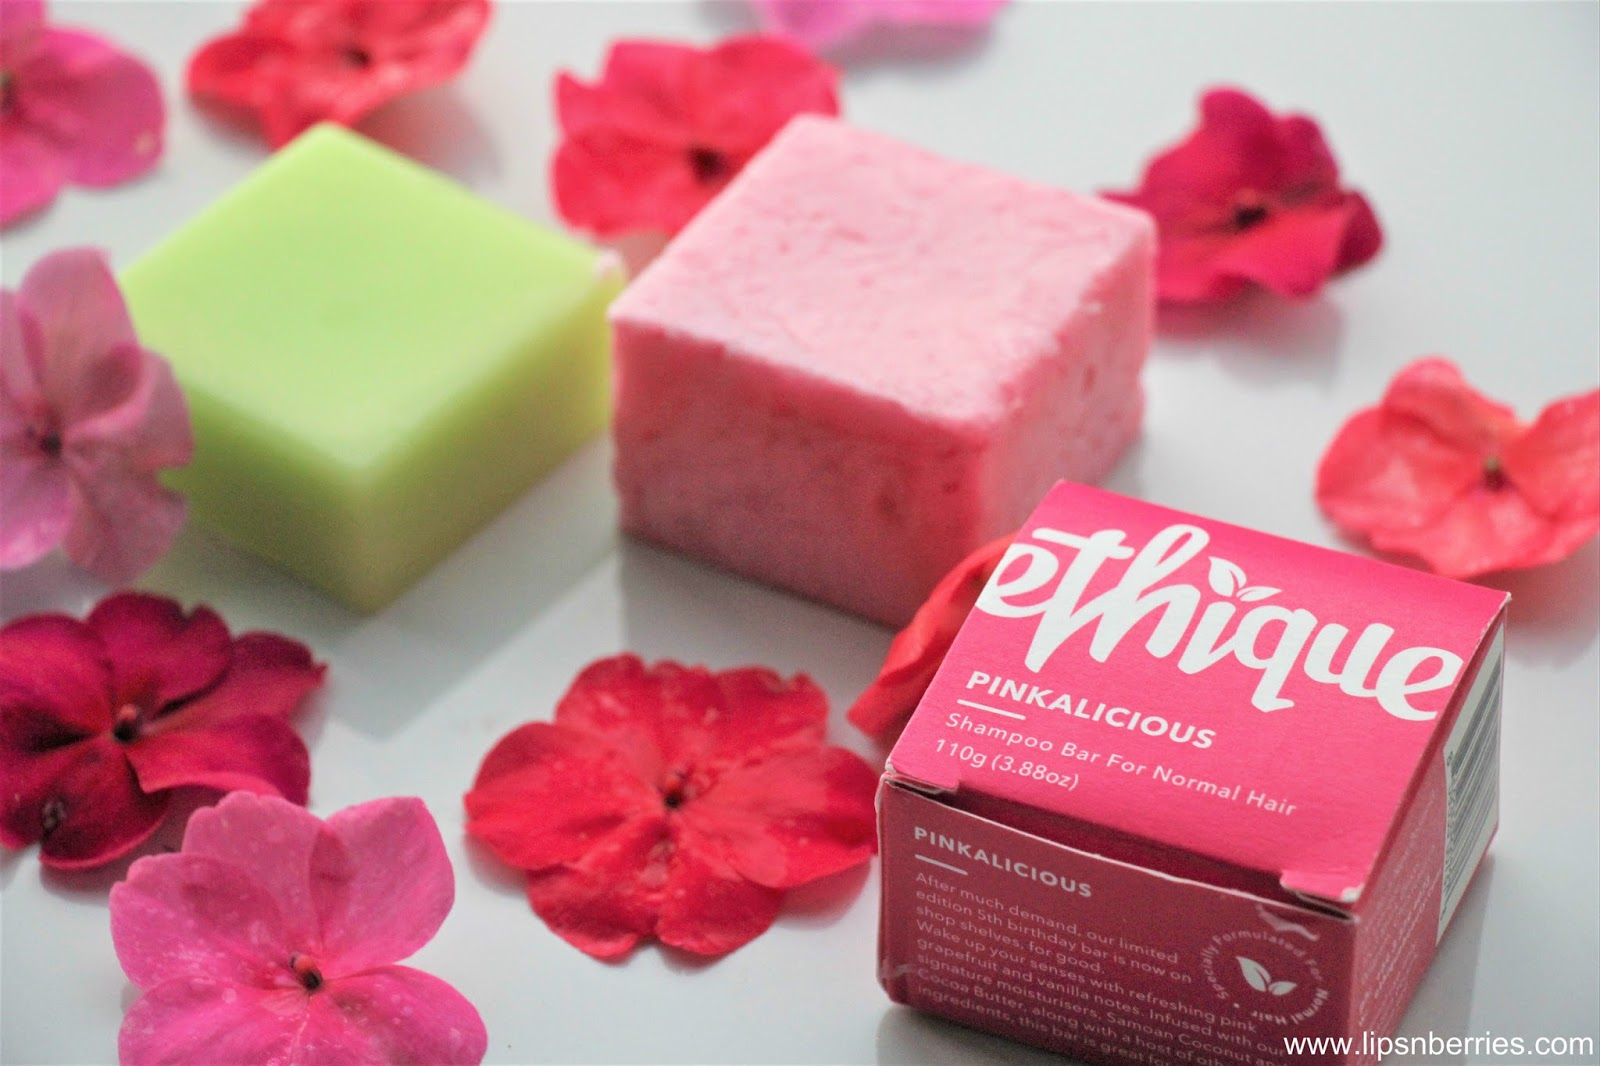 Ethique Pinkalicious Shampoo Bar Wonderbar Conditioner Review